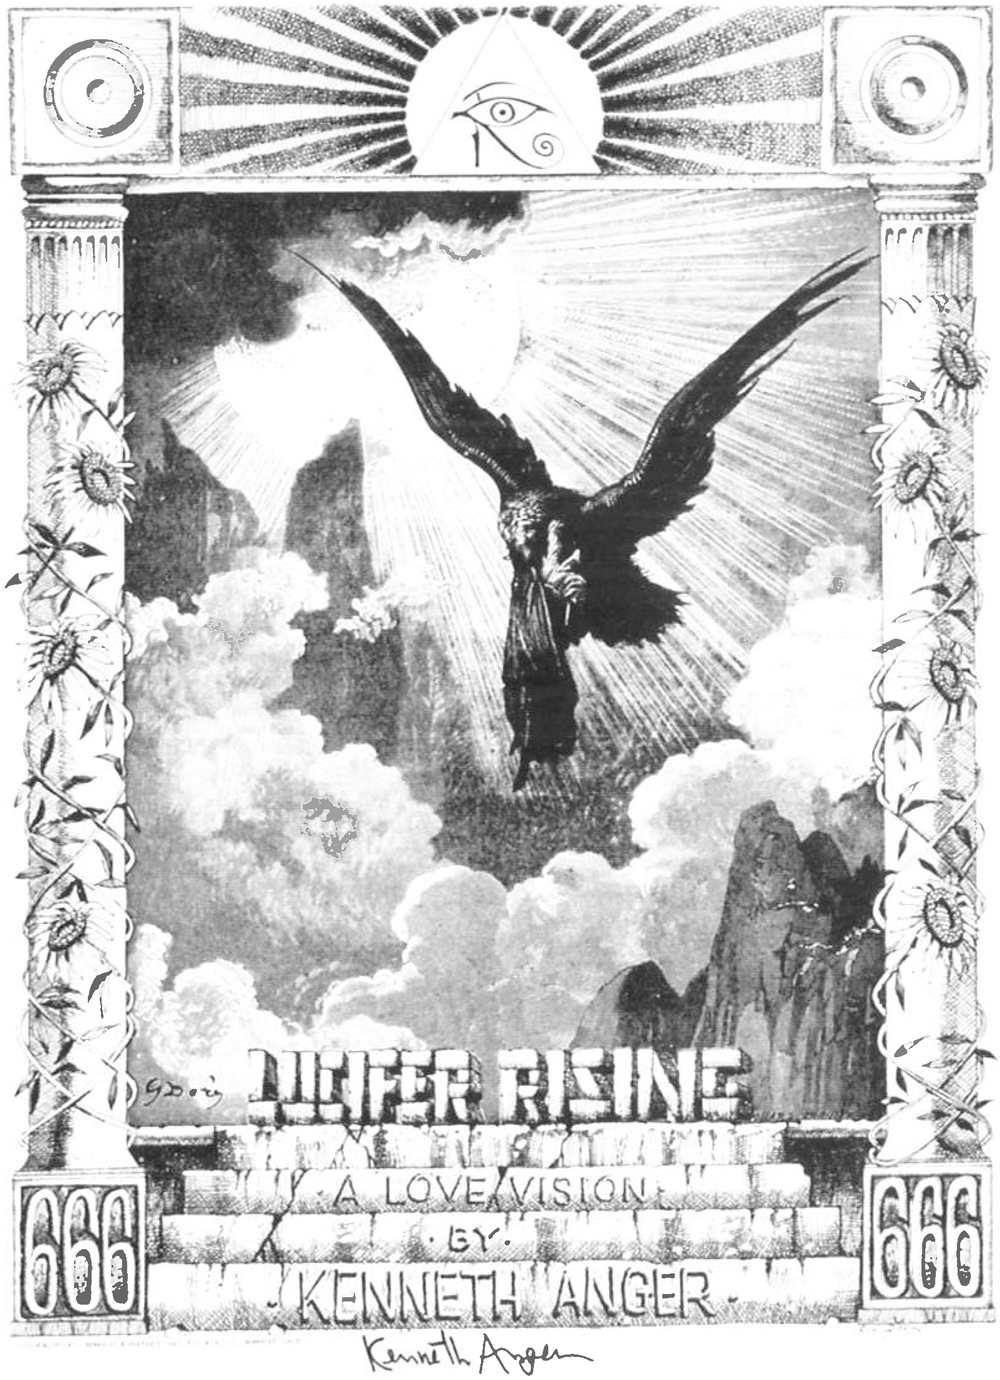 A LOVE VISION - A film poster for Lucifer Rising by Kenneth Anger designed by Rick Griffin